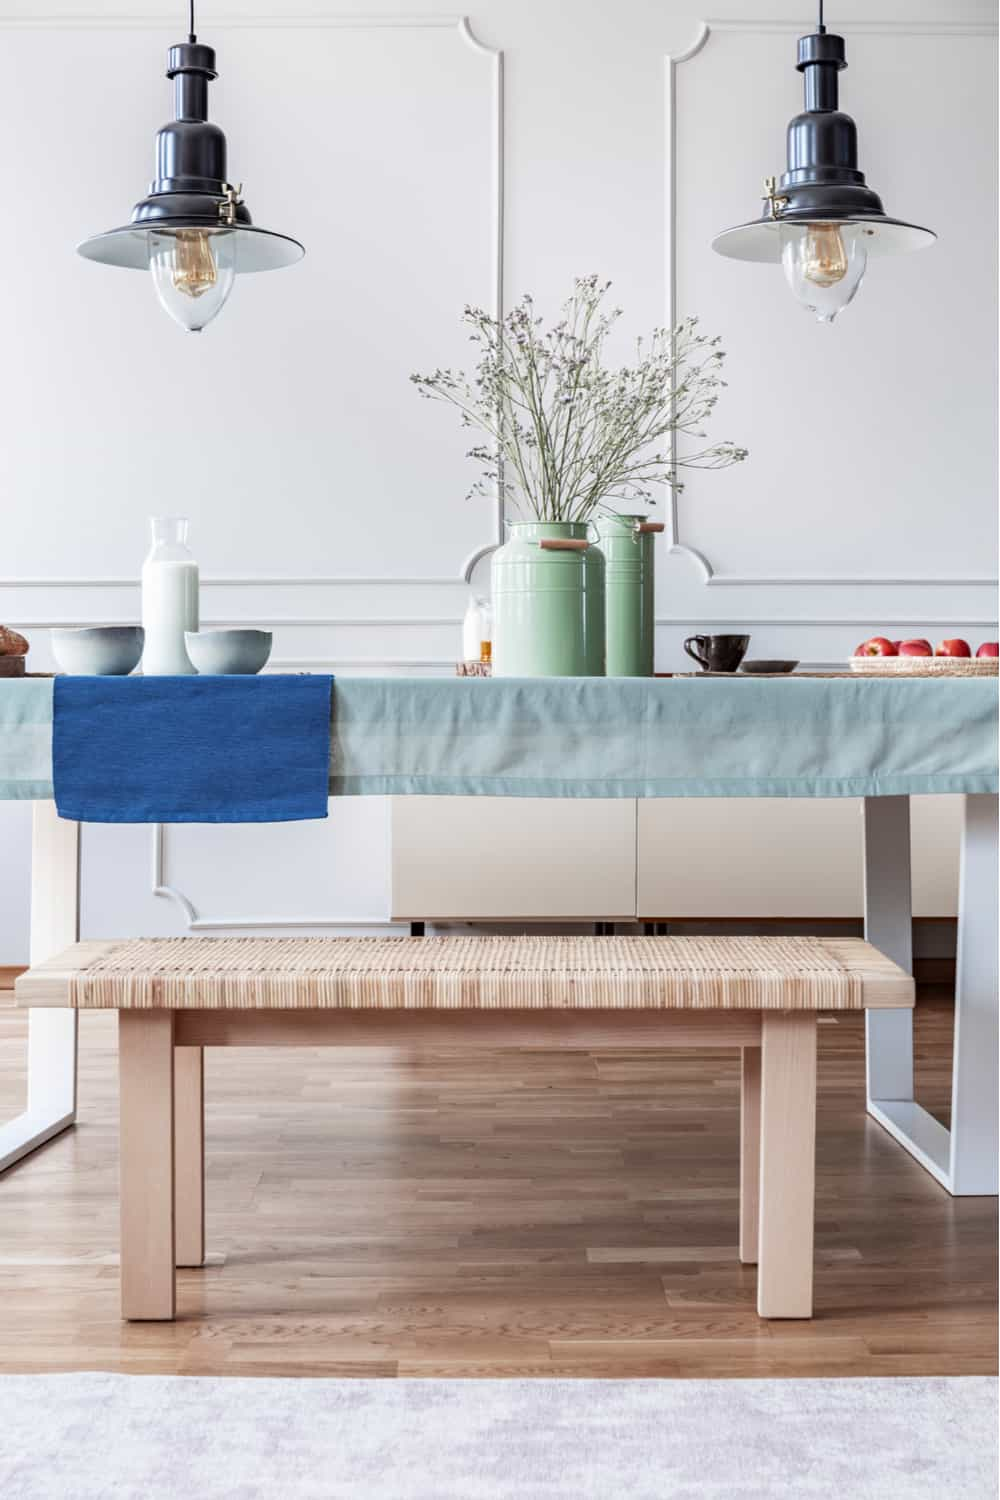 24+ Dining Bench Ideas Background